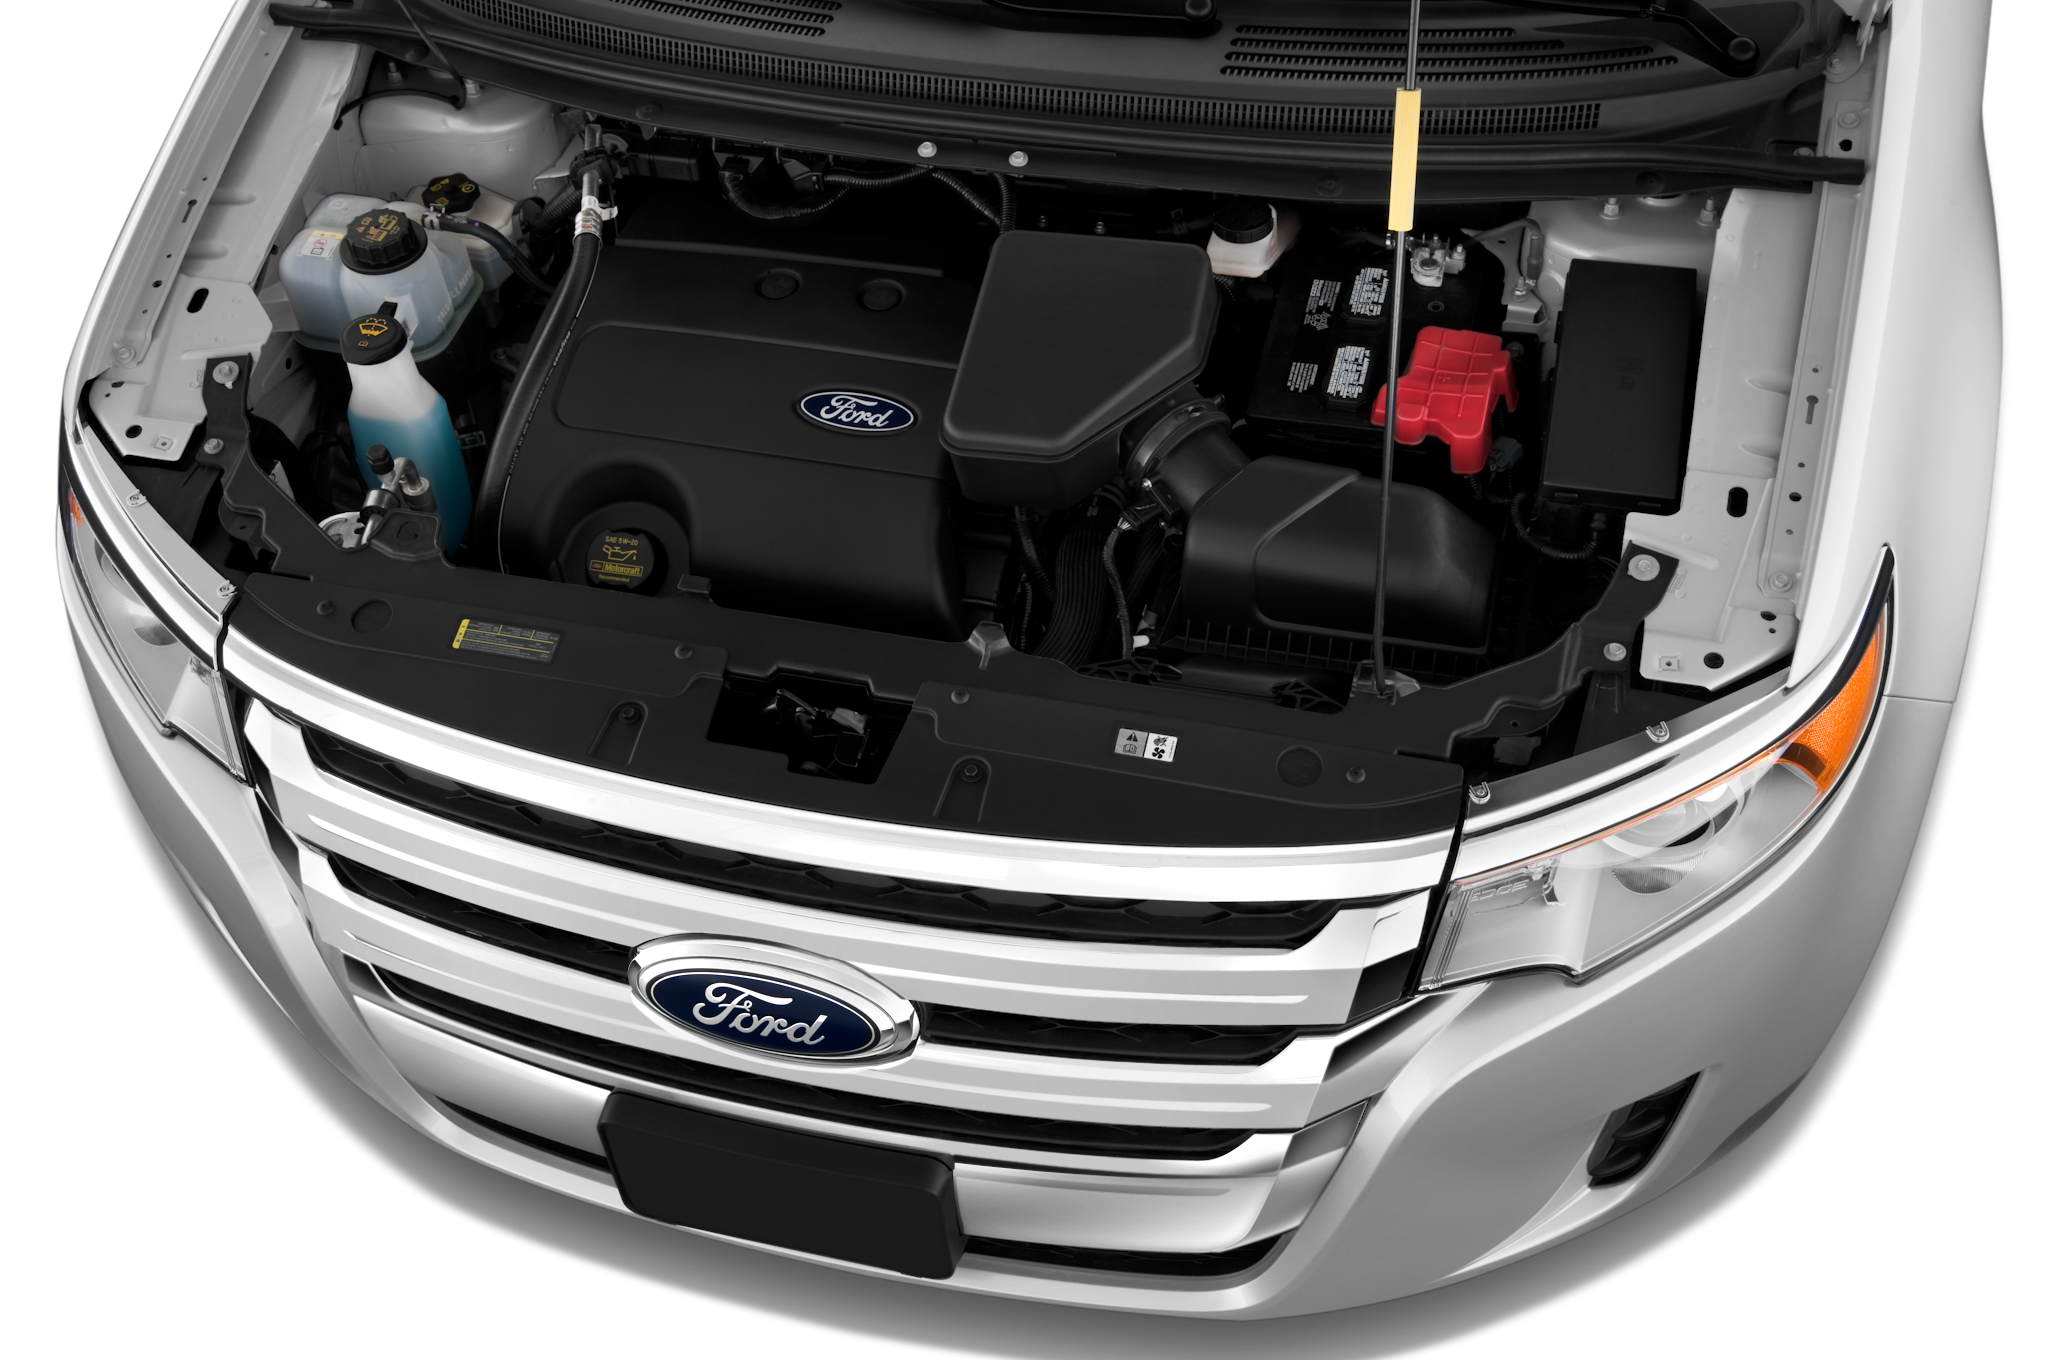 2012 ford edge recalled for ecoboost fuel line damper. Black Bedroom Furniture Sets. Home Design Ideas